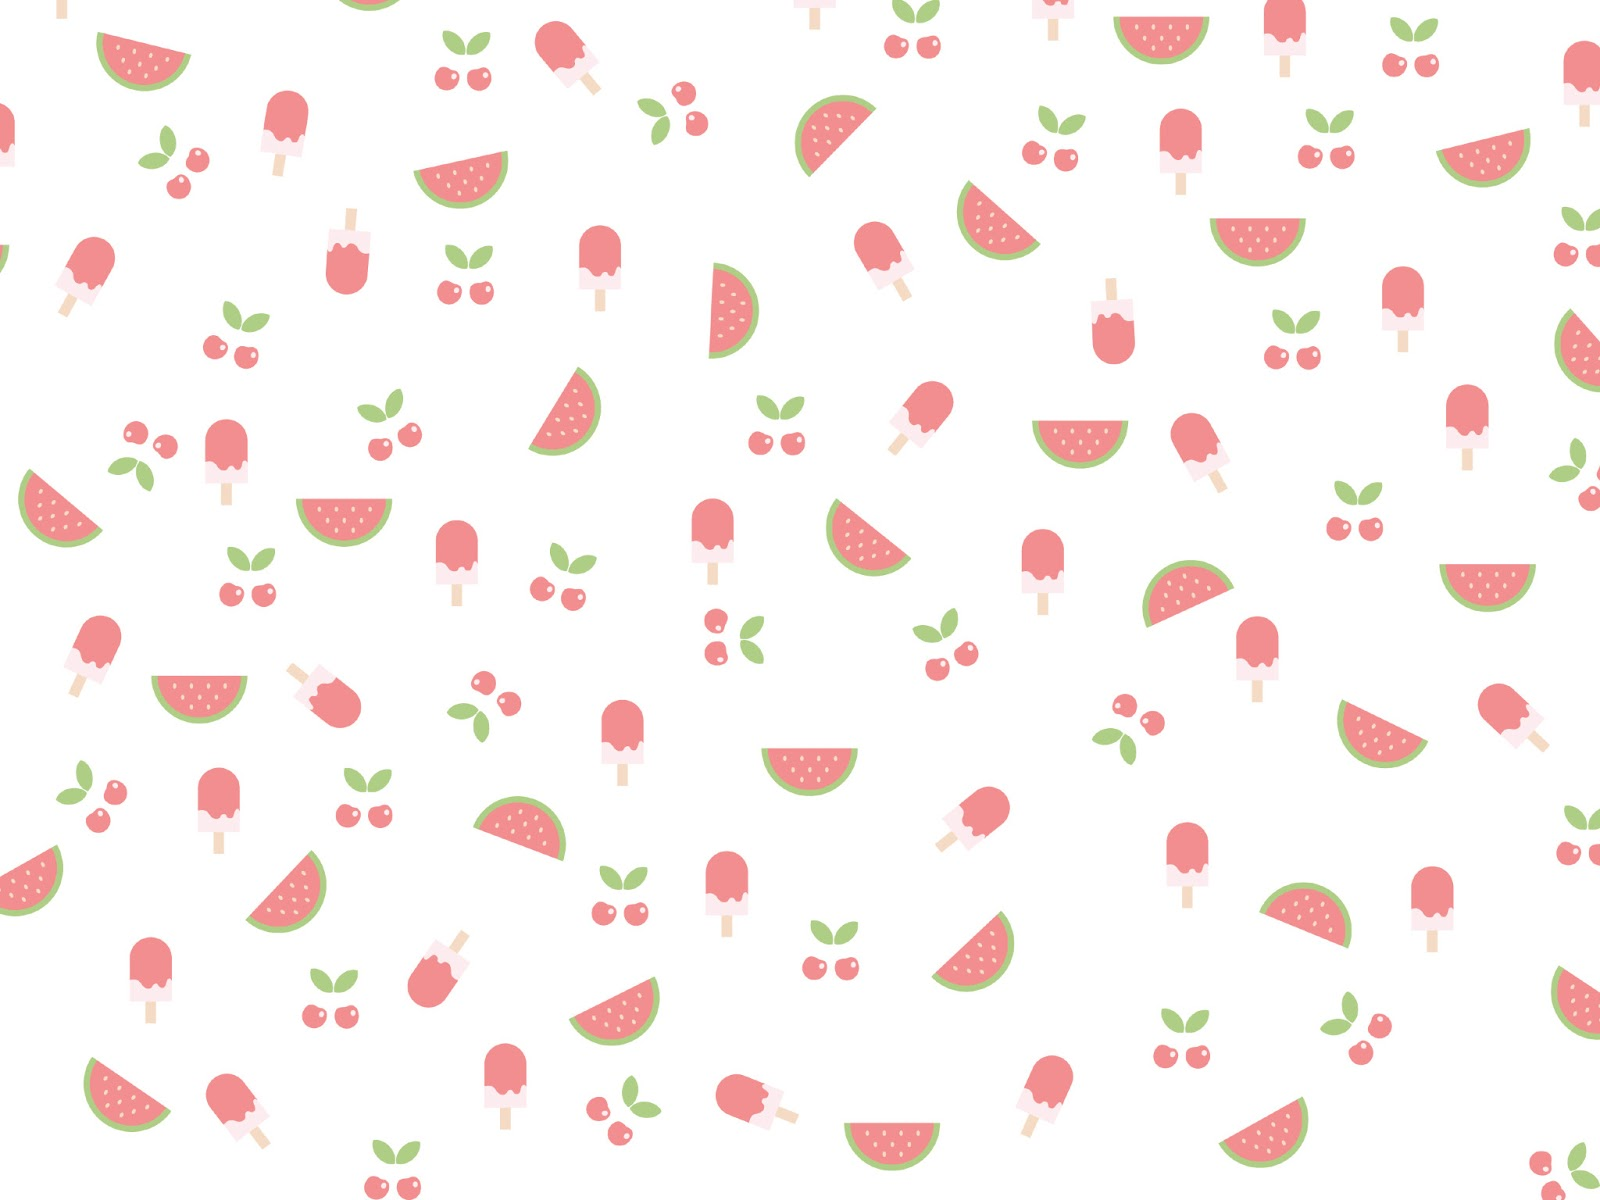 1600x1200 - Watermelon Wallpapers 20